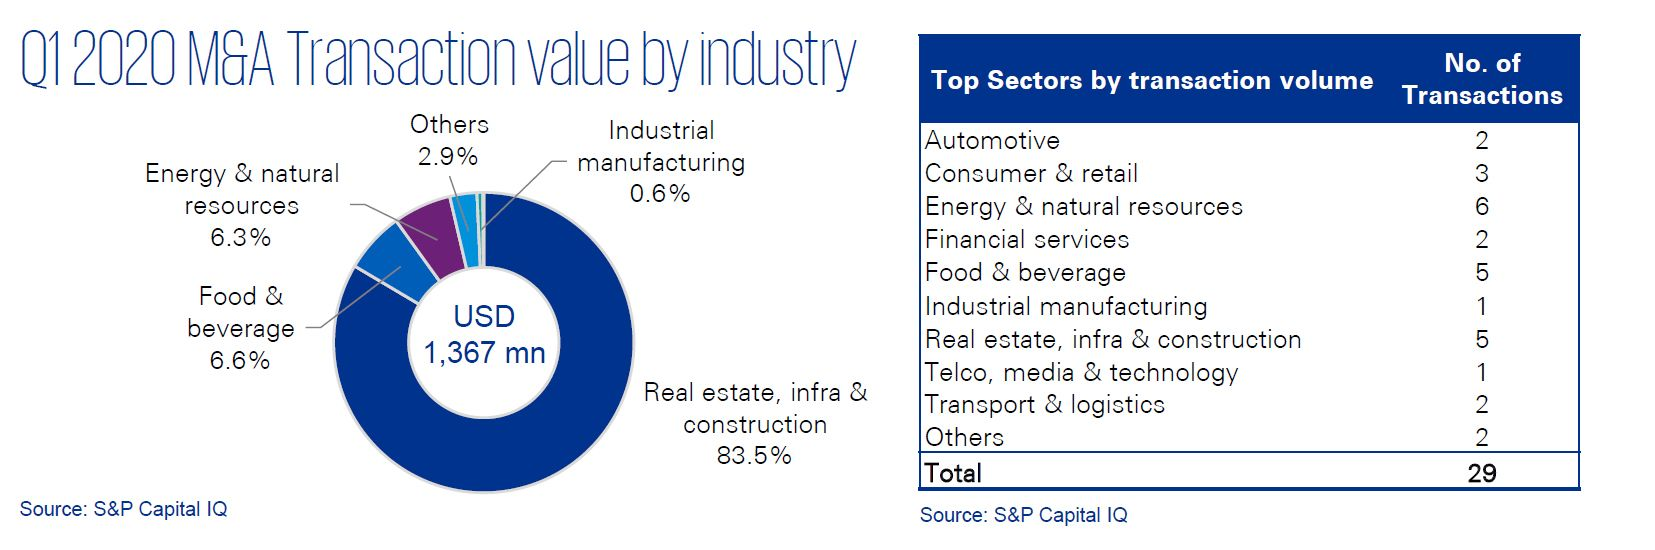 Q1 2020 M&A transaction value by industry